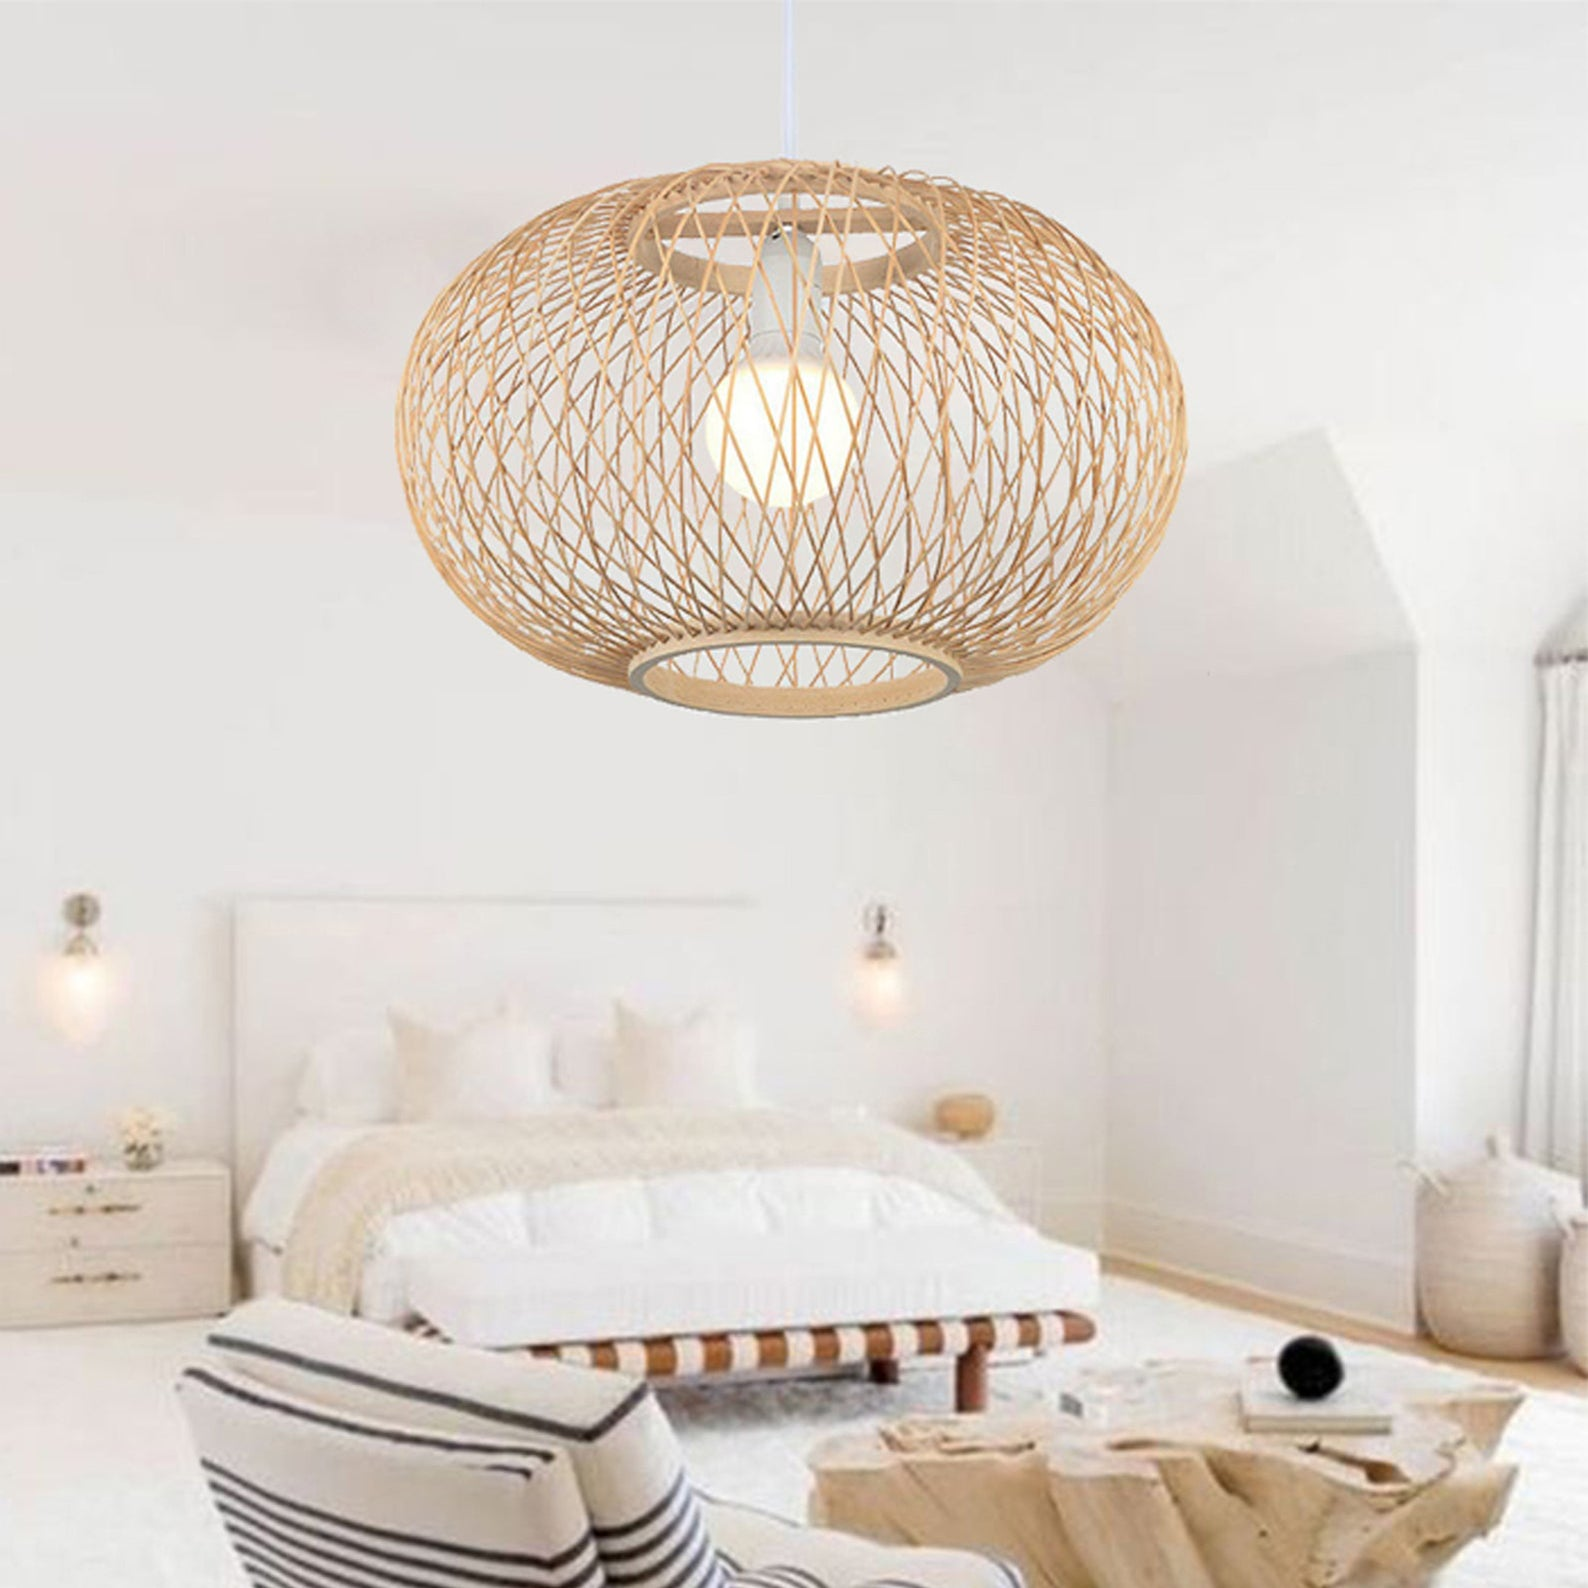 Rattan Hanging Light Lampshade Wicker Pendant Lights